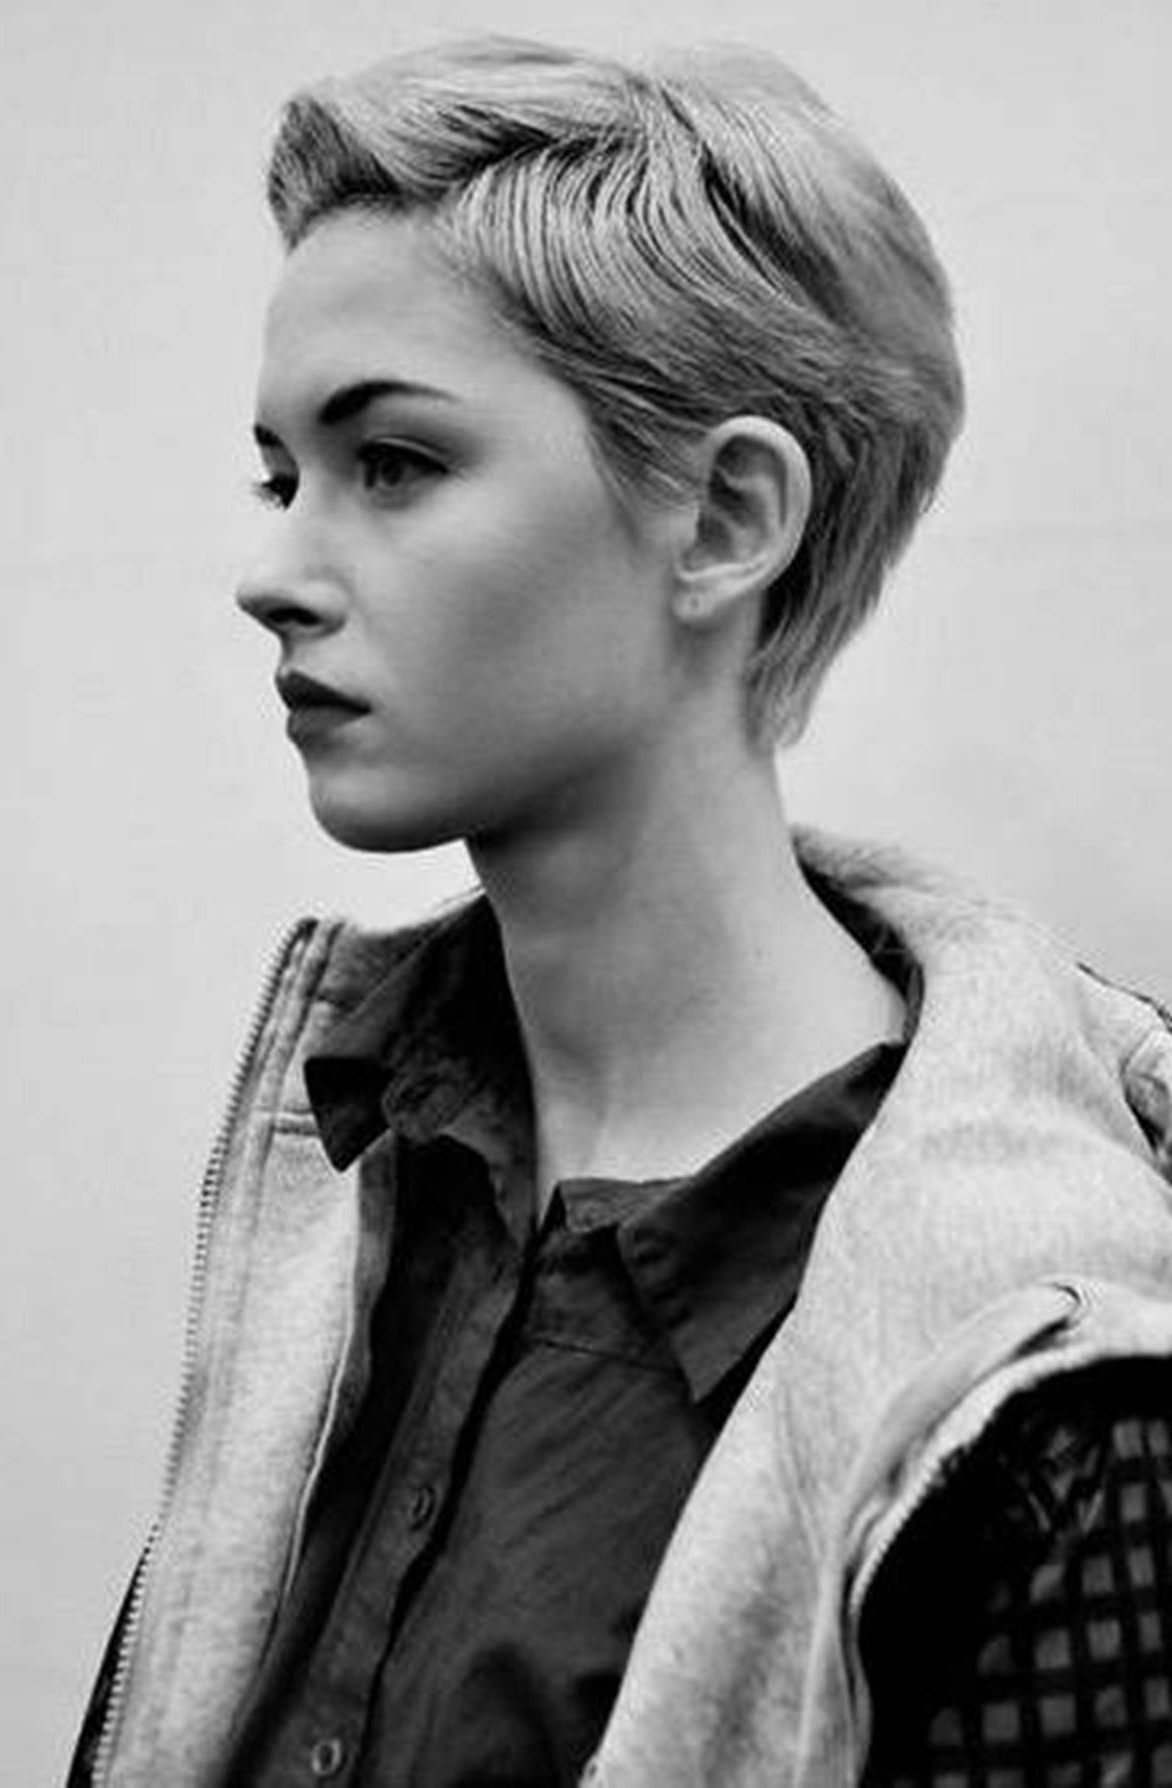 Mesmerizing Half Shaved Hairstyles Short Hair Also Shaved Haircuts Regarding Short Hairstyles One Side Shaved (View 11 of 25)